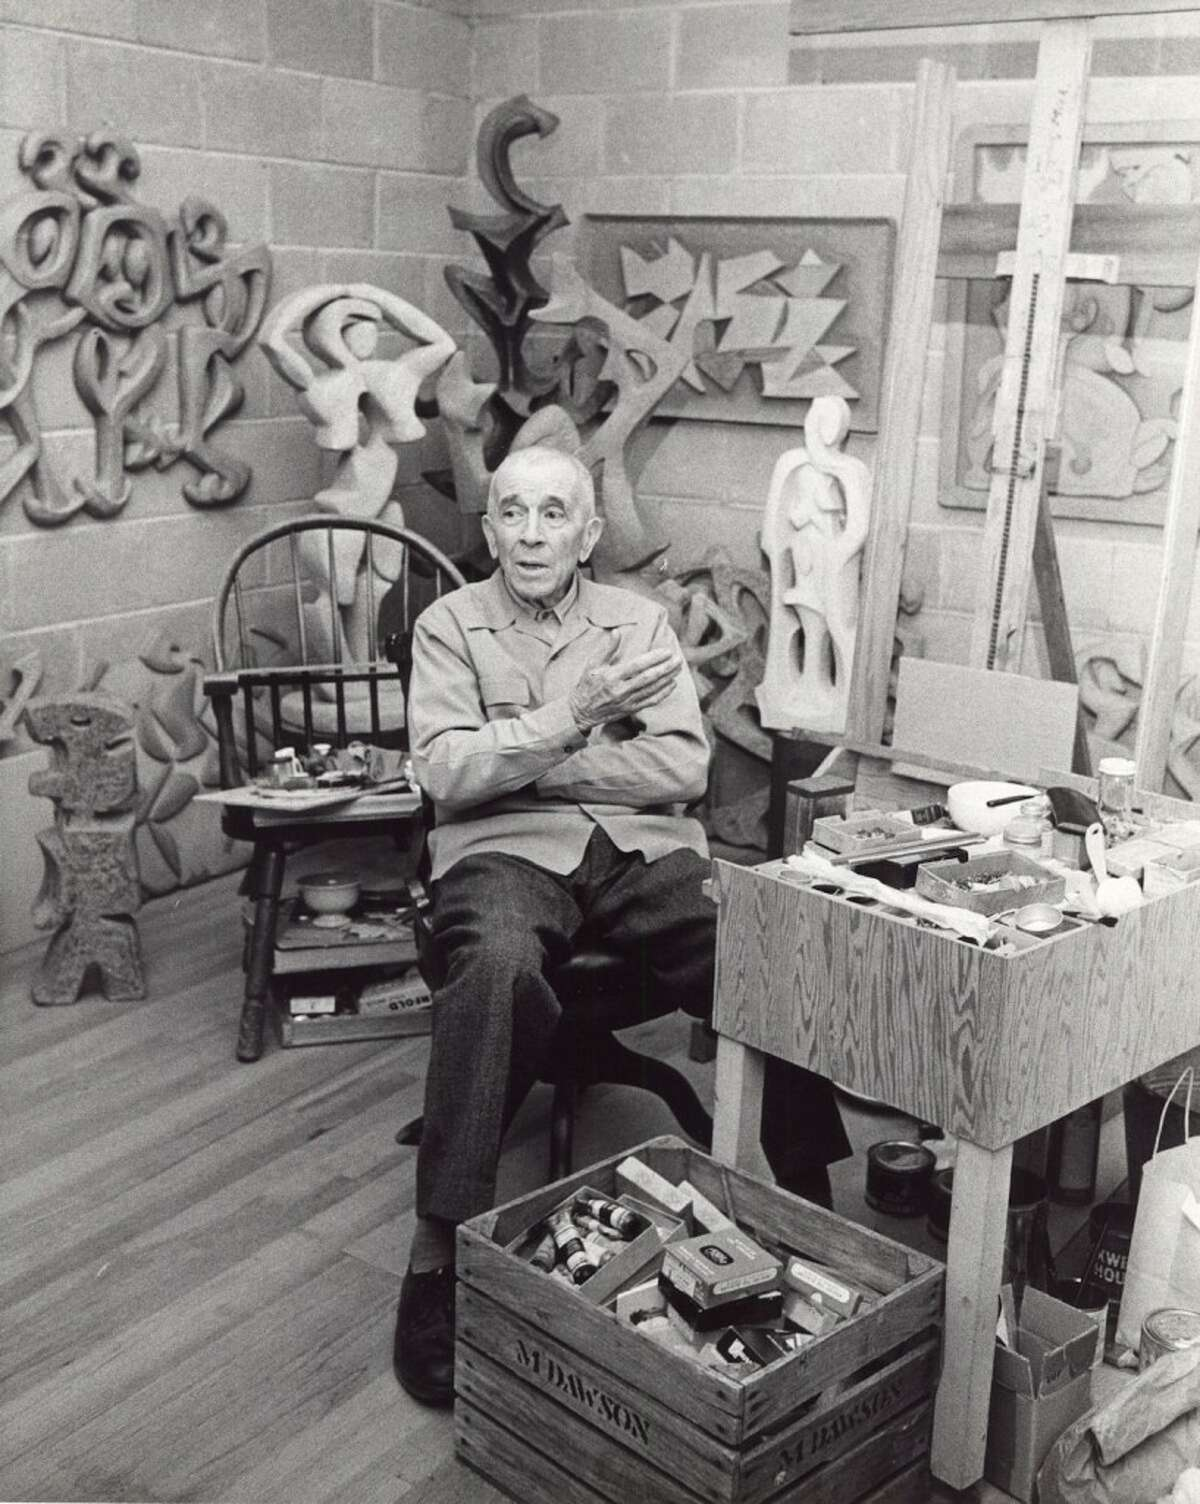 The late noted Mason County artist Manierre Dawson is shown in his studio. Retired Wes Shore Community College professor Sharon Bluhm wrote a book on Dawson that will be highlighted in a lecture at the Ludington Area Arts Center on Thursday, Sept. 27 at 7 p.m.(Courtesy photo)